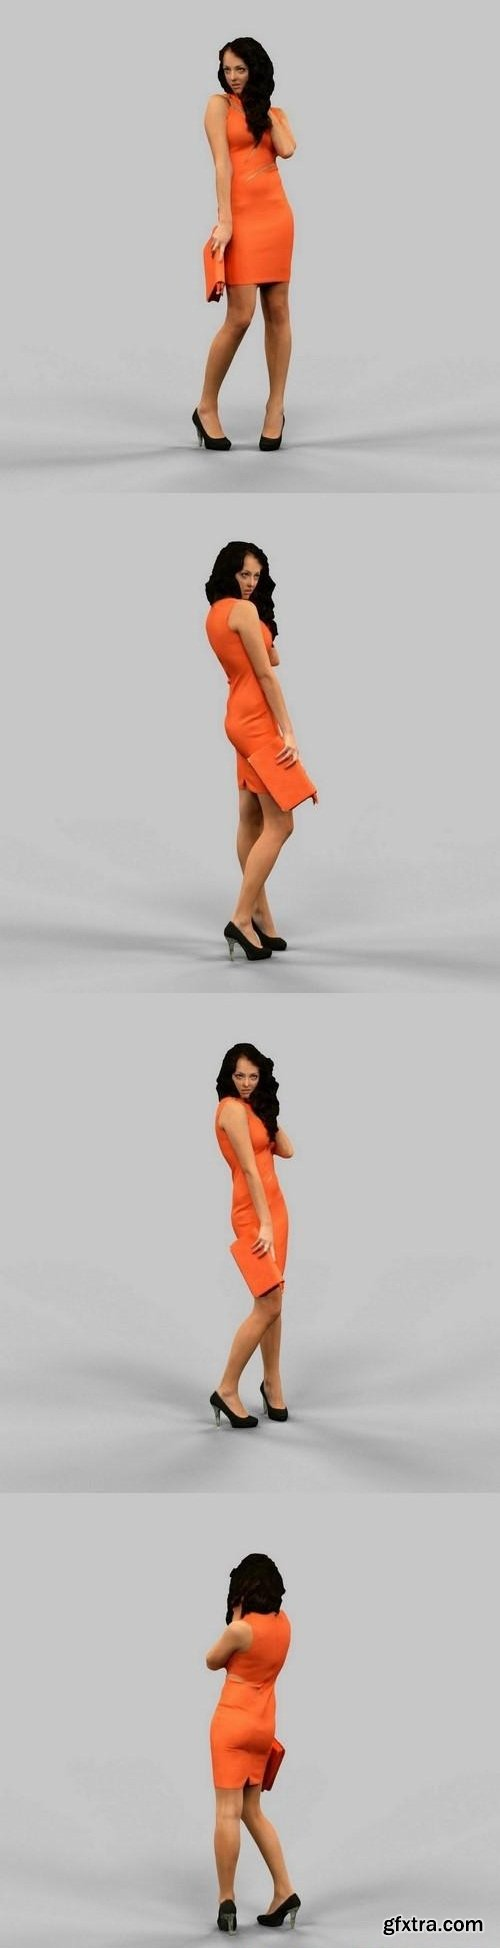 Woman in orange dress 3D model